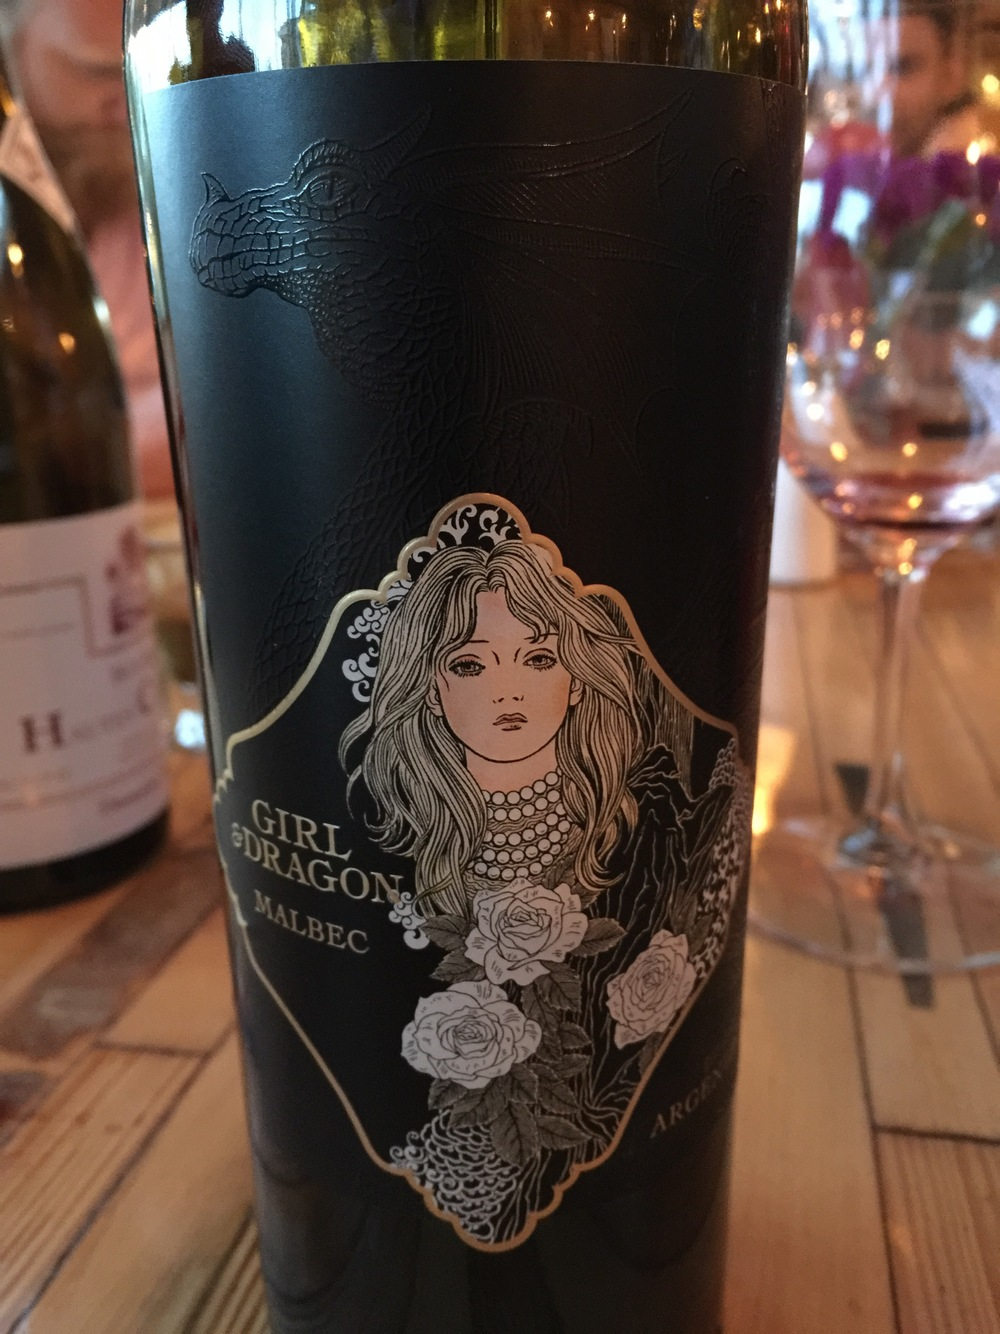 2014 Dragon Girl Malbec, Mendoza